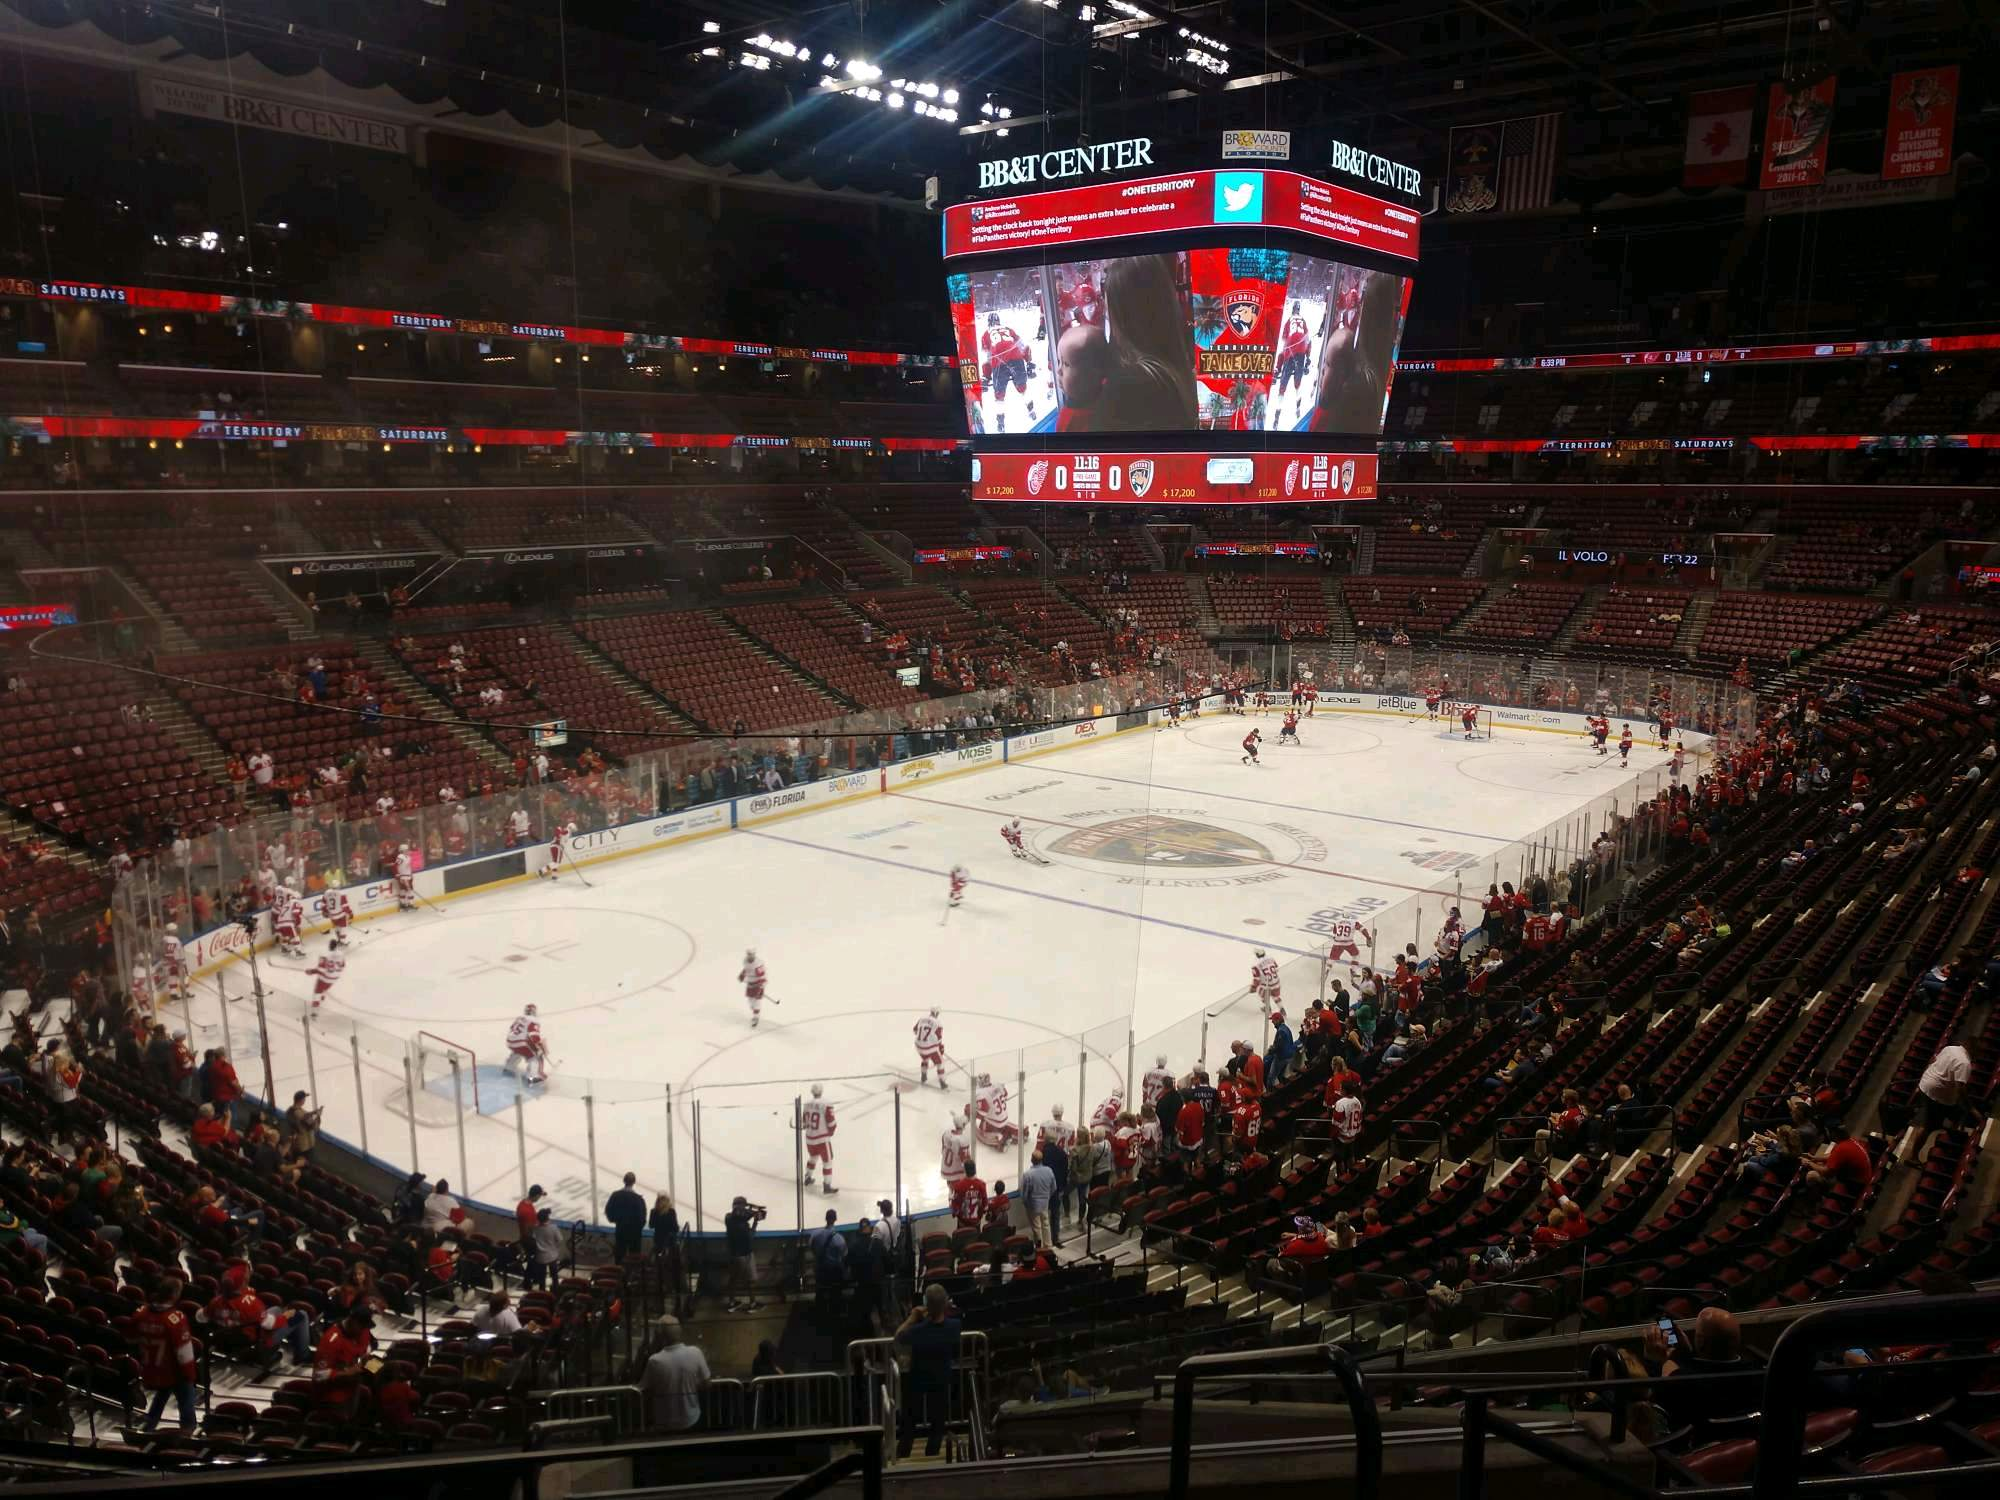 BB&T Center Section 124 Row 26 Seat 2